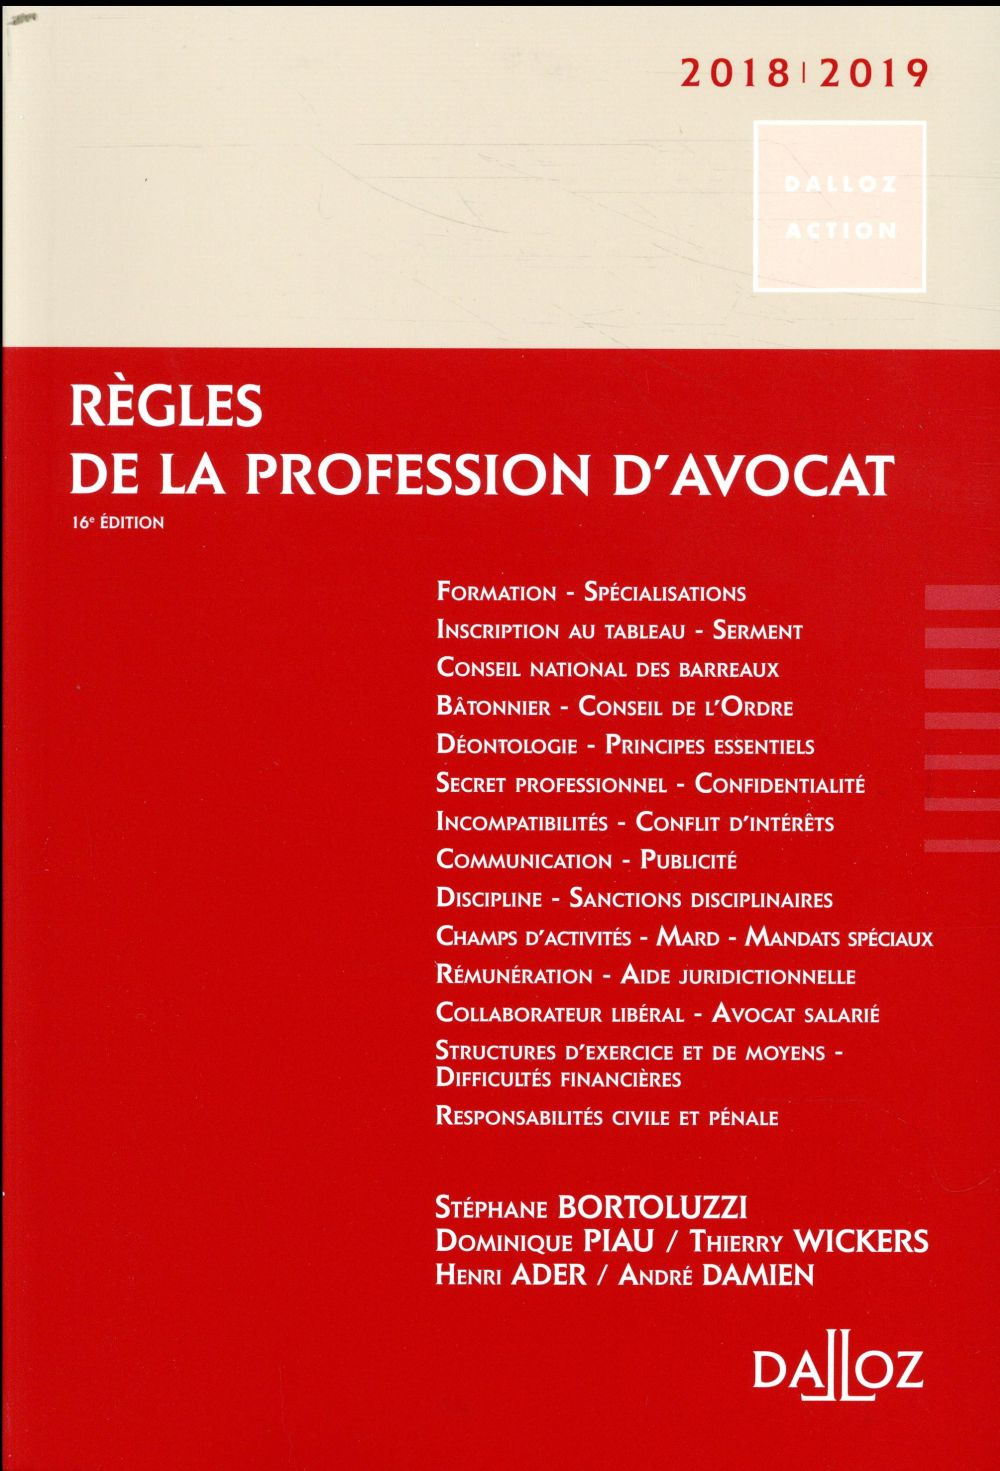 Règles de la profession d'avocat (édition 2018/2019)